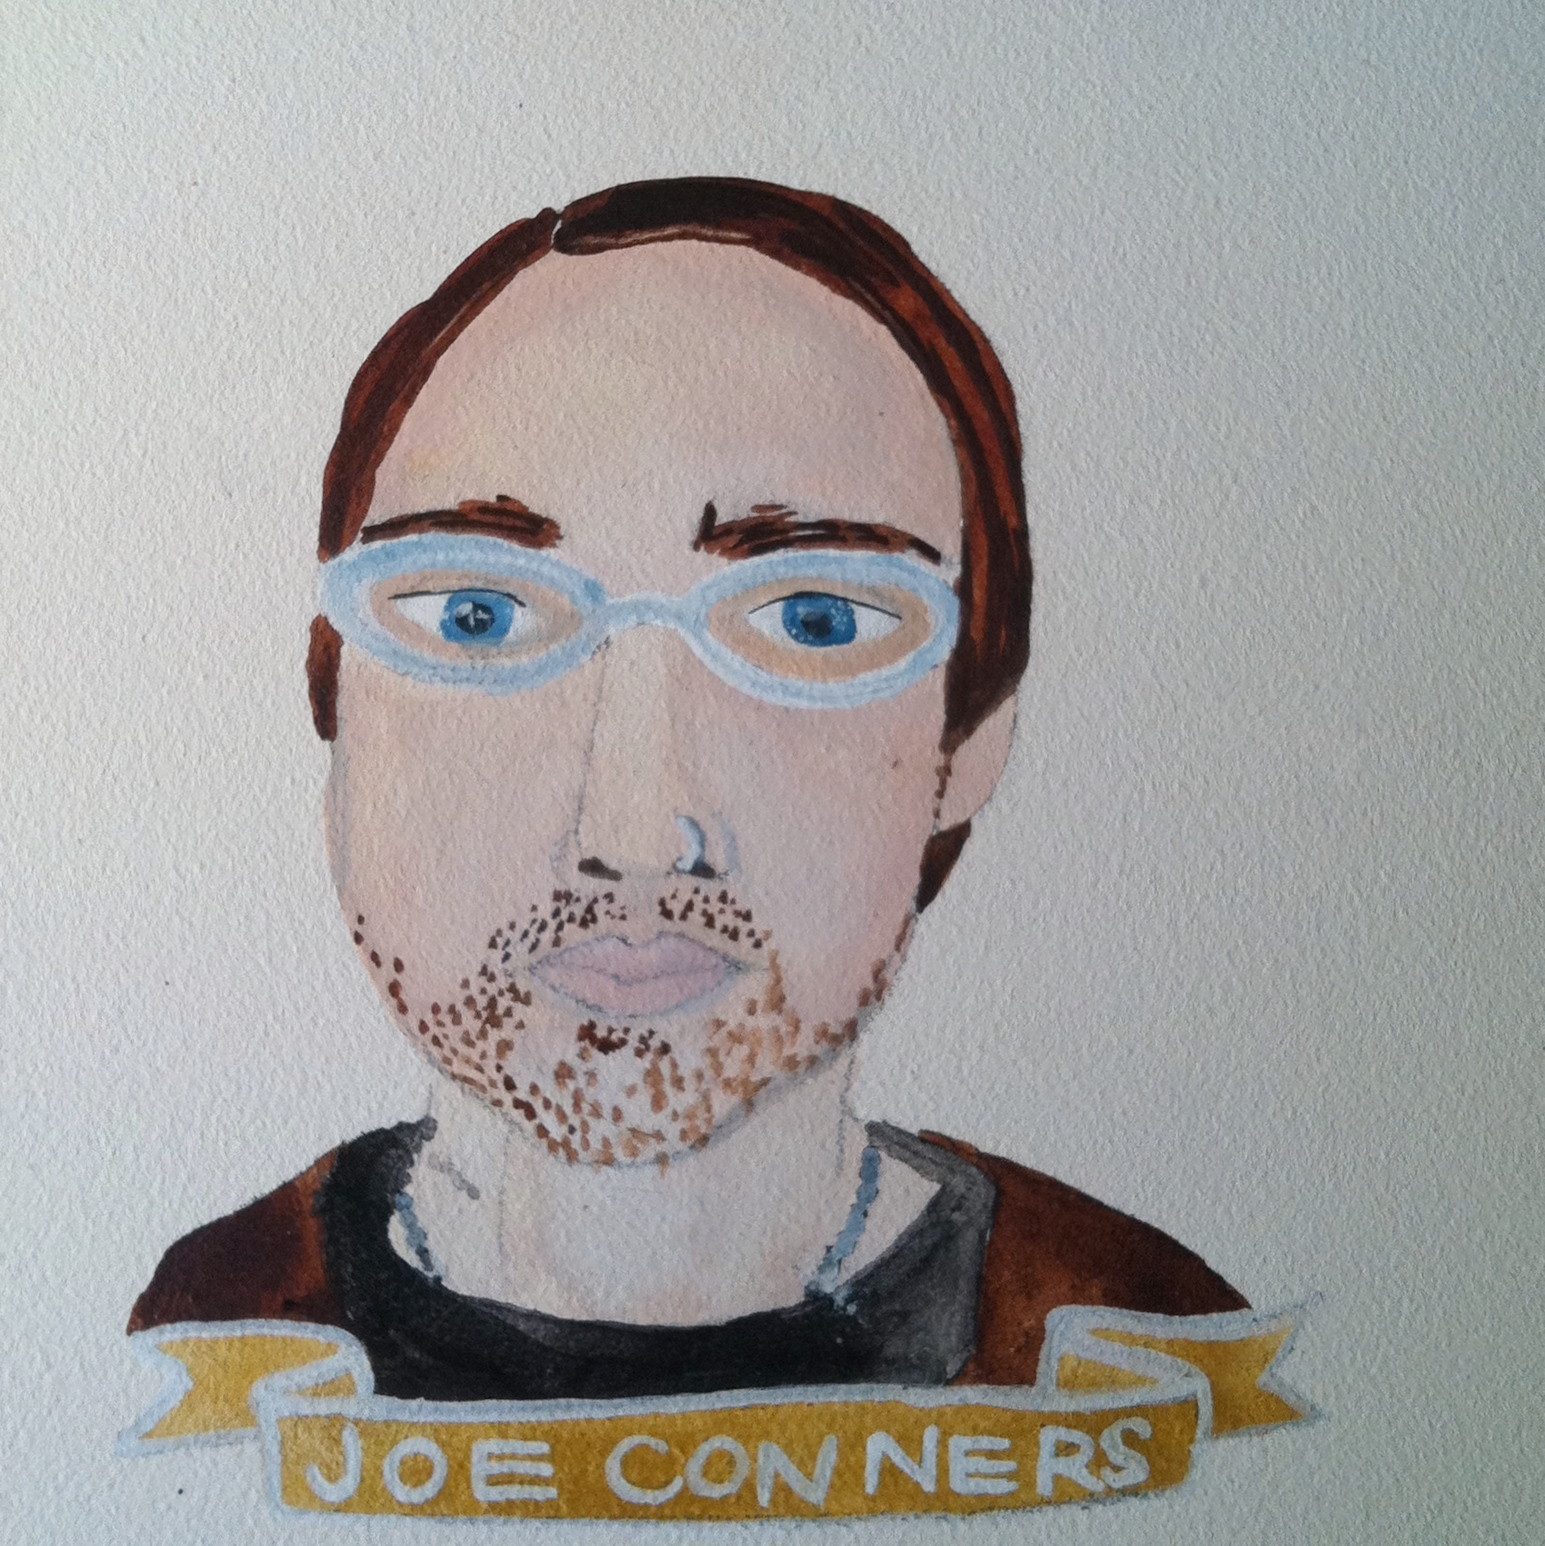 Talent Loves Company at Barbara Archer Gallery: 365 portraits by Lydia Walls - Joe Conners